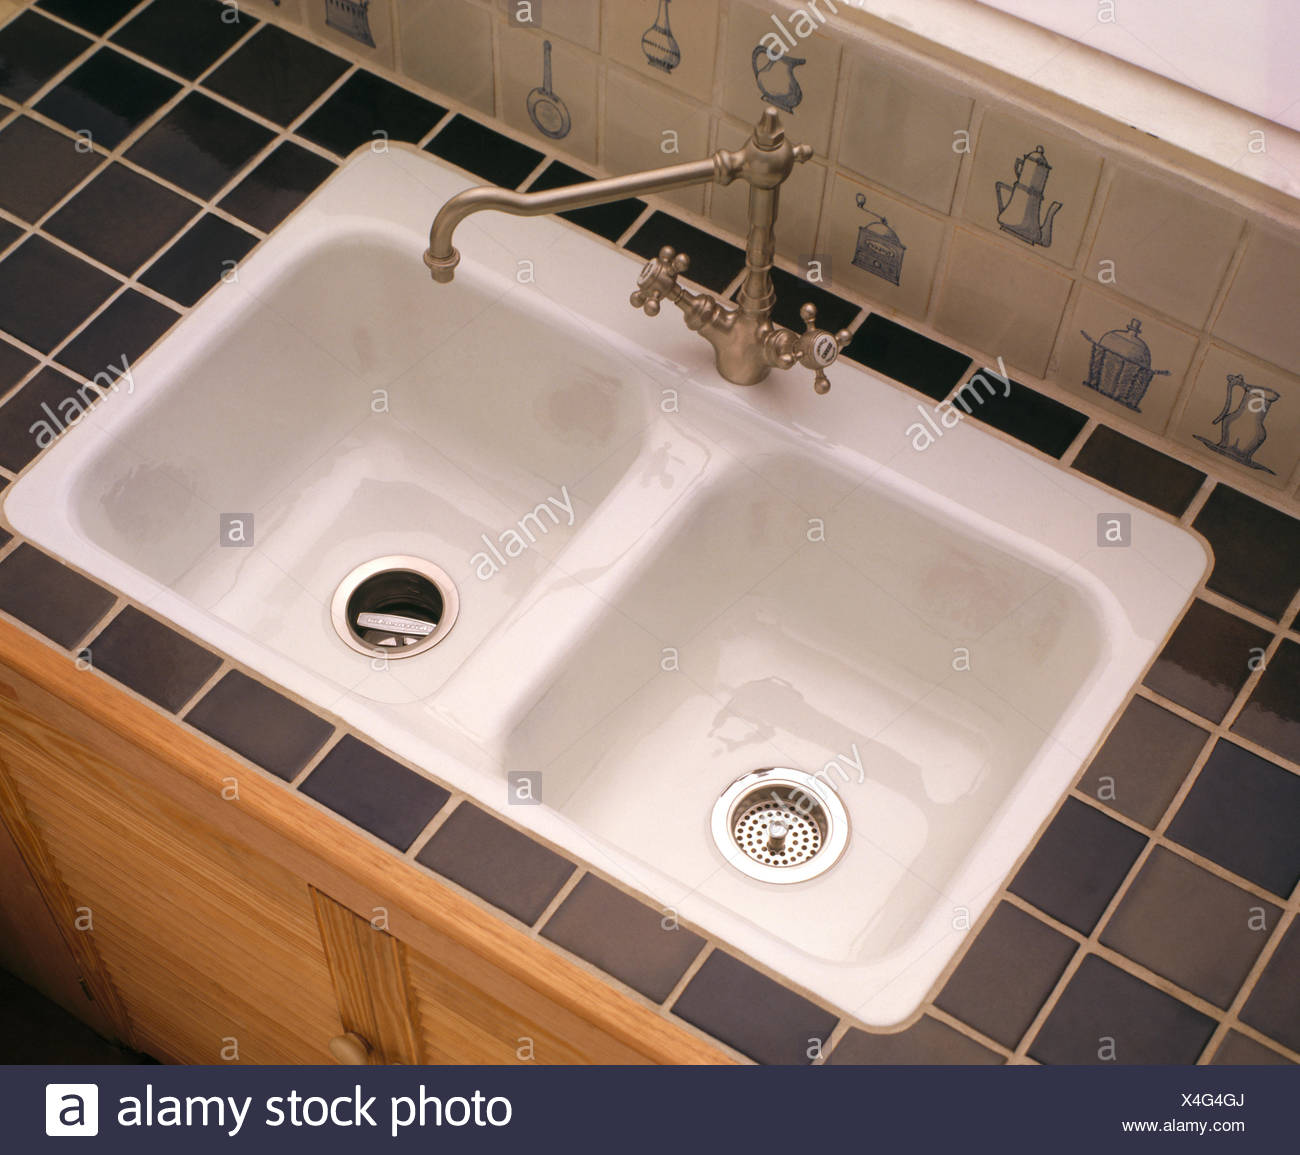 Chrome tap above white porcelain double sinks - Stock Image